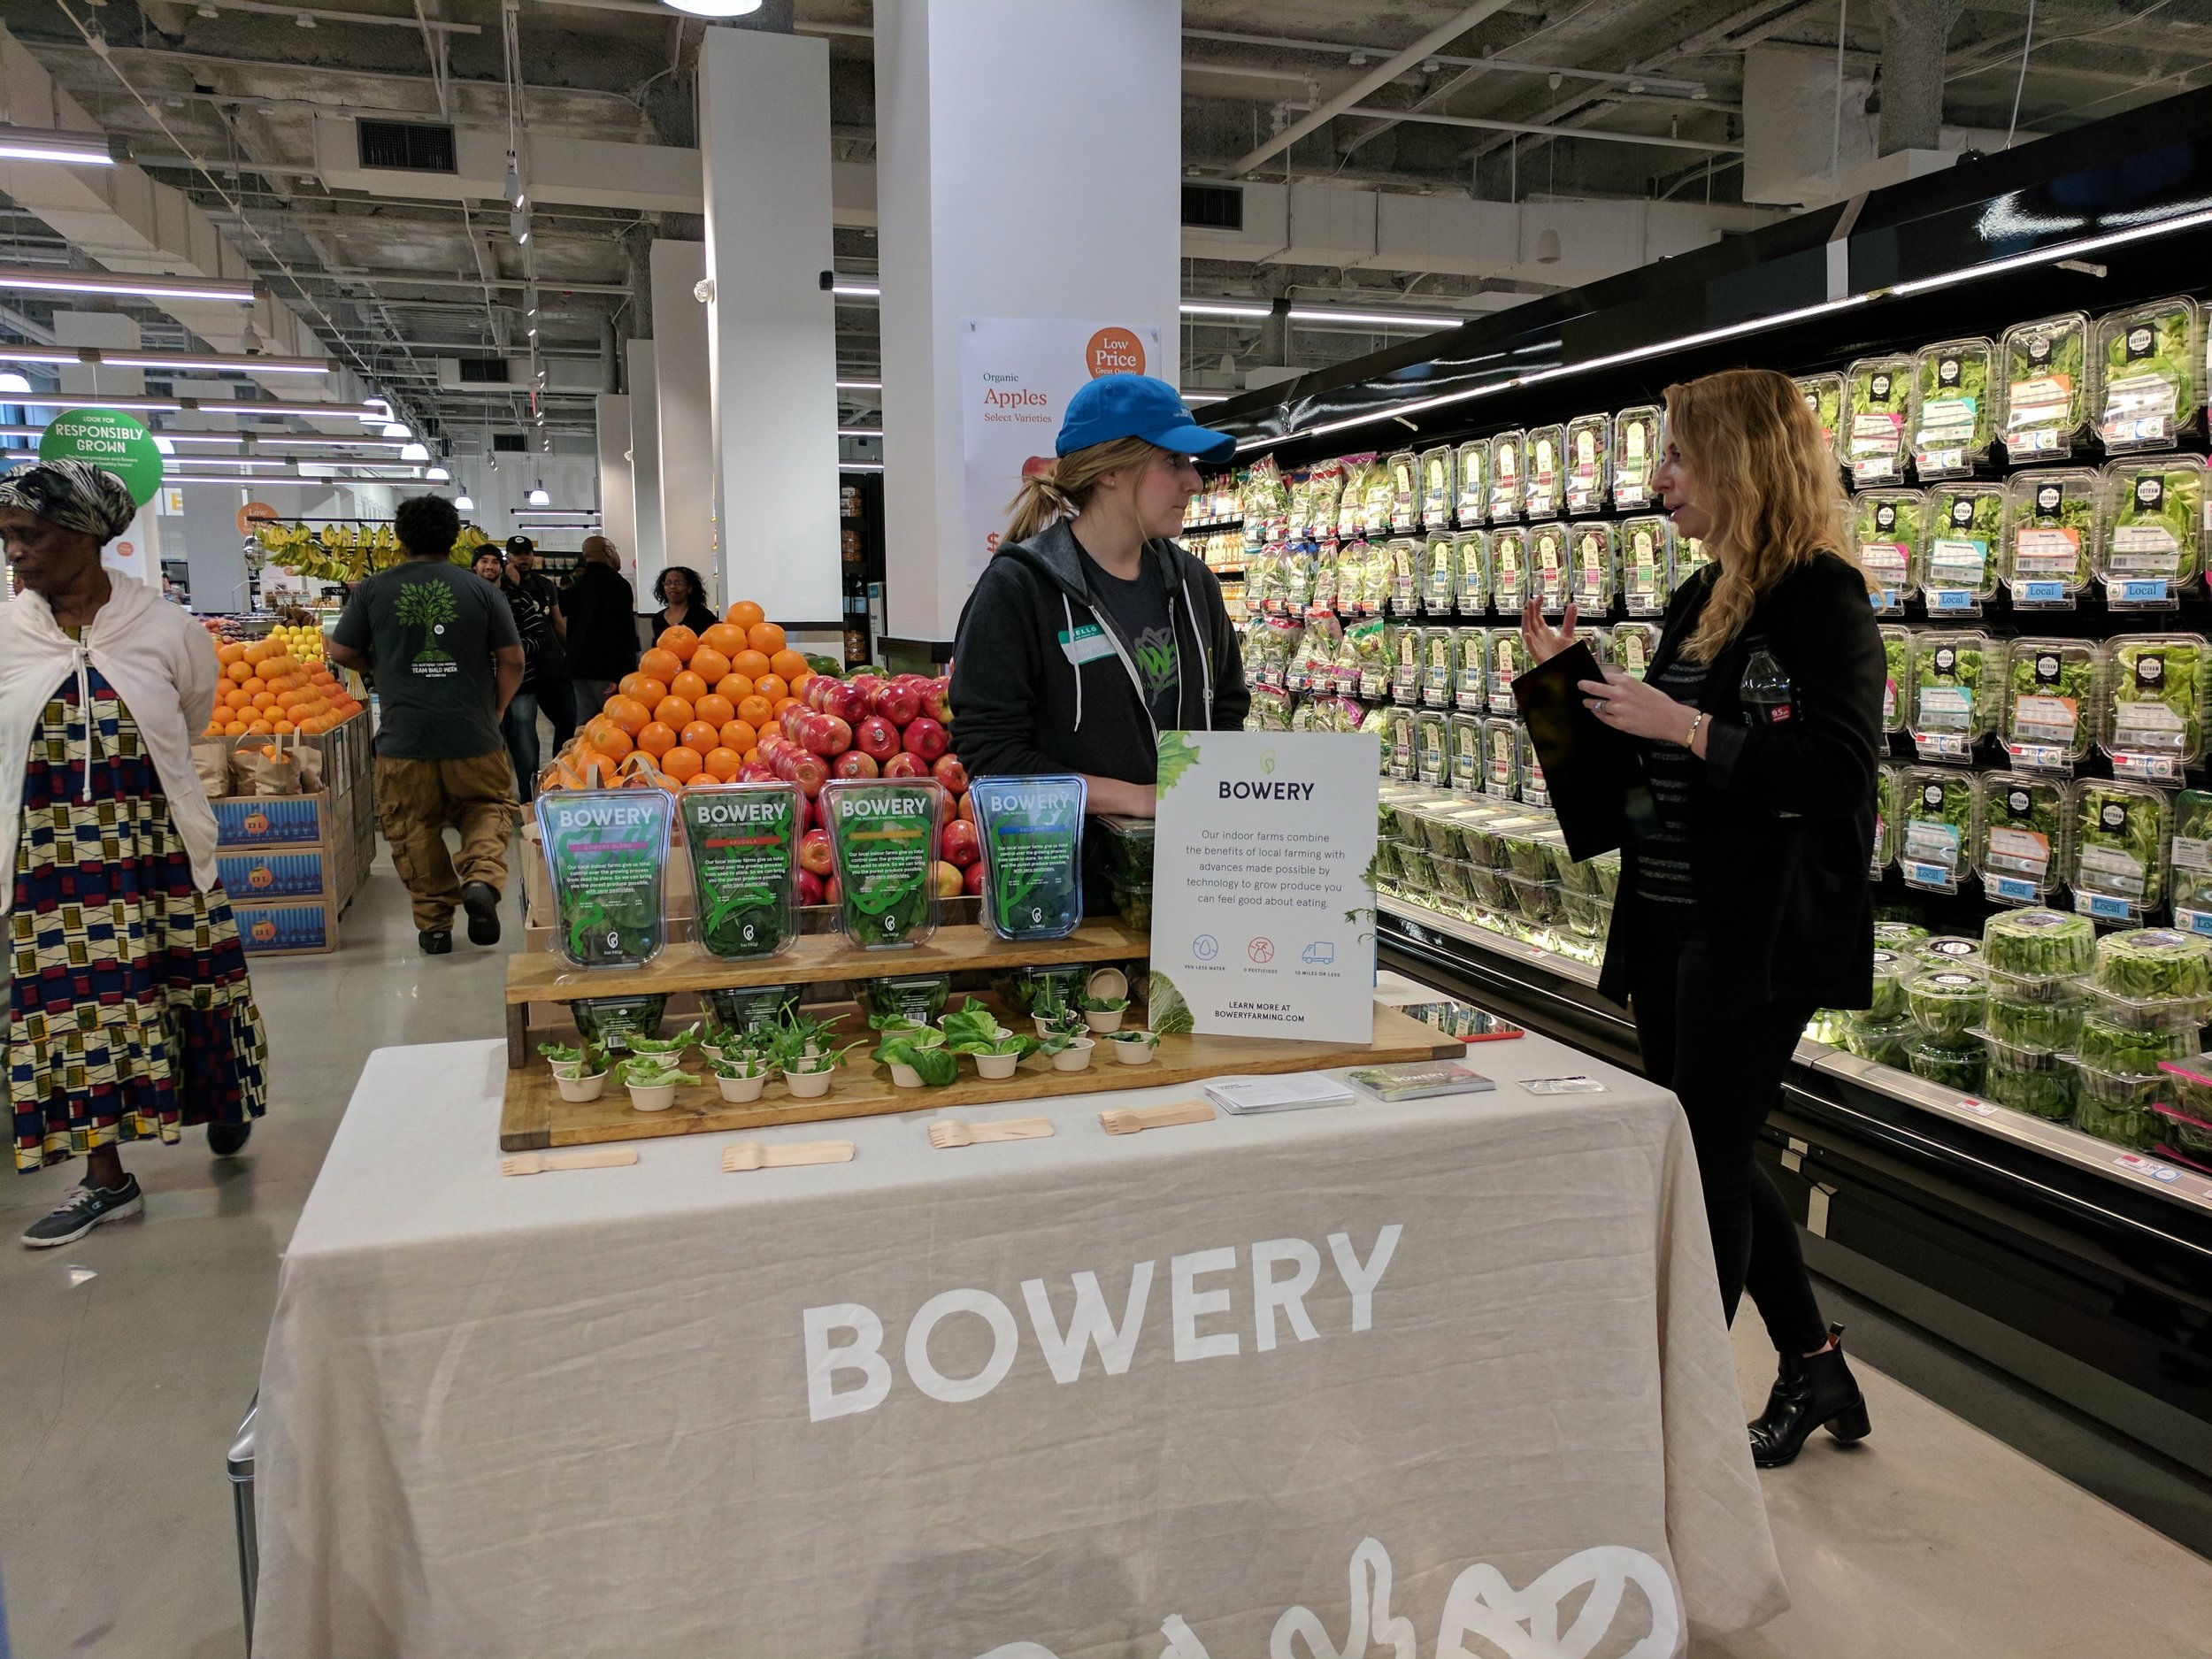 Bowery, a Kearny based hydroponic farm, is one of the local vendors found in the Whole Foods Newark Market.